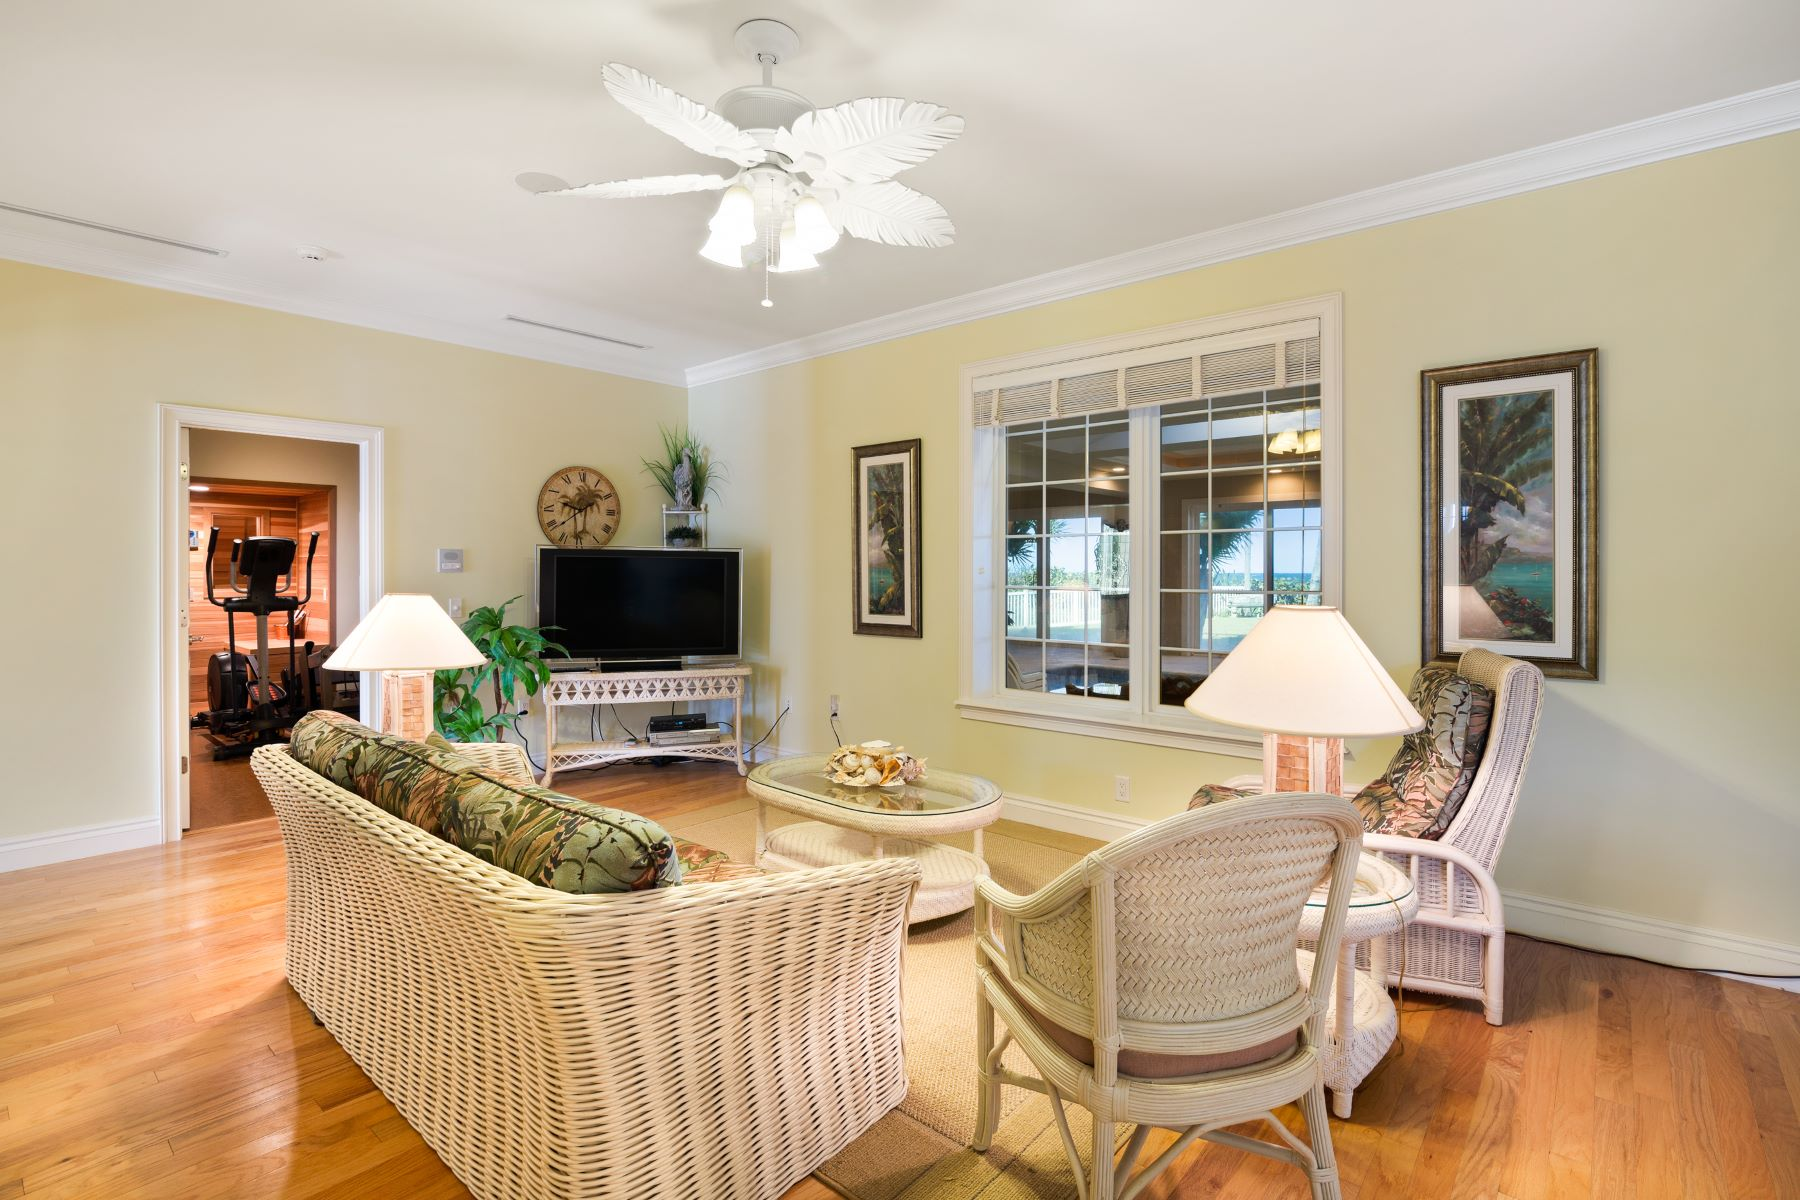 Additional photo for property listing at Gorgeous Tropically Landscaped Home with Endless Ocean Vistas 5045 S Highway A1A Melbourne Beach, フロリダ 32951 アメリカ